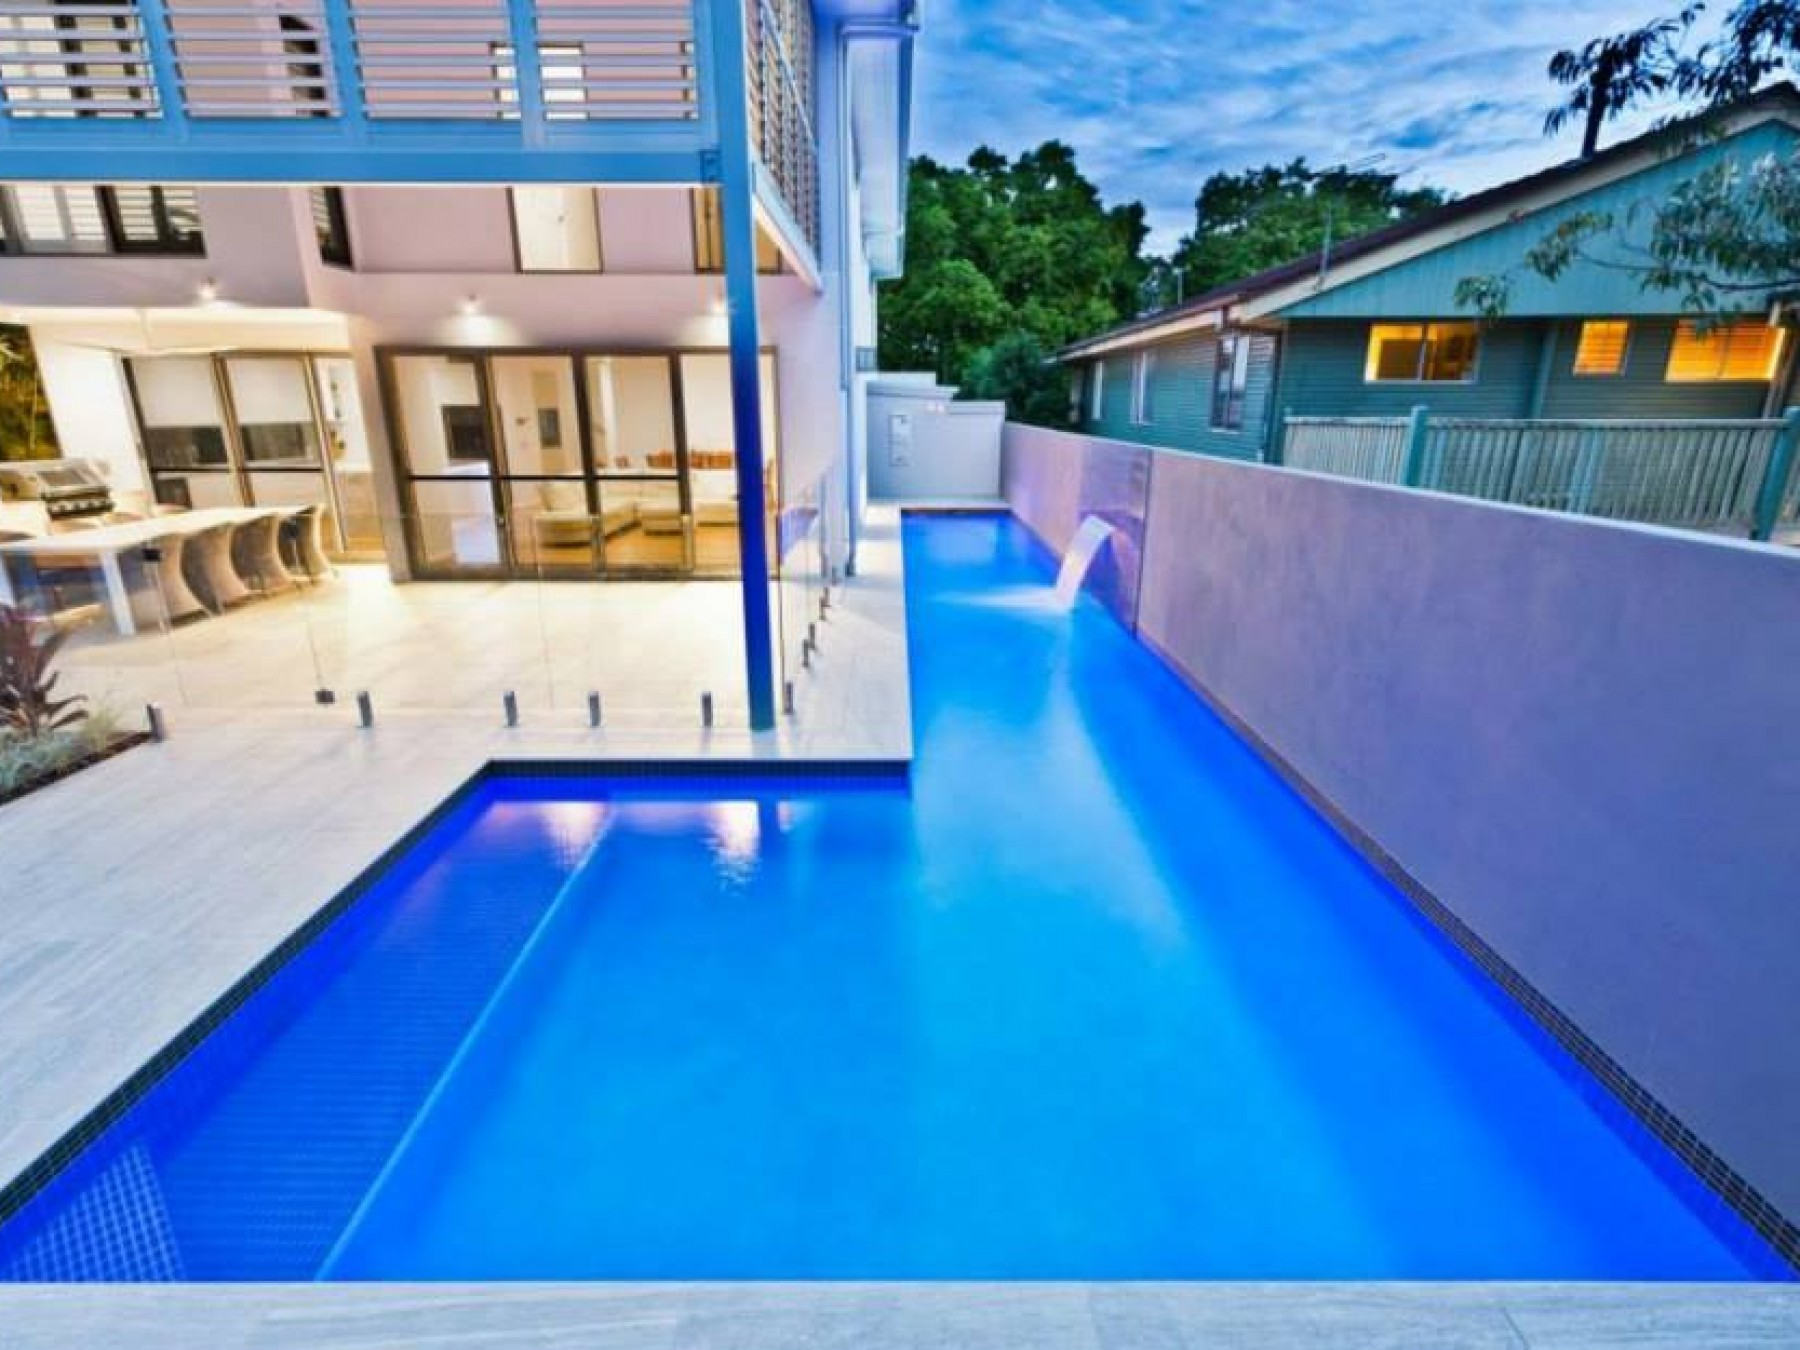 Selling or Leasing a pool in Alderley